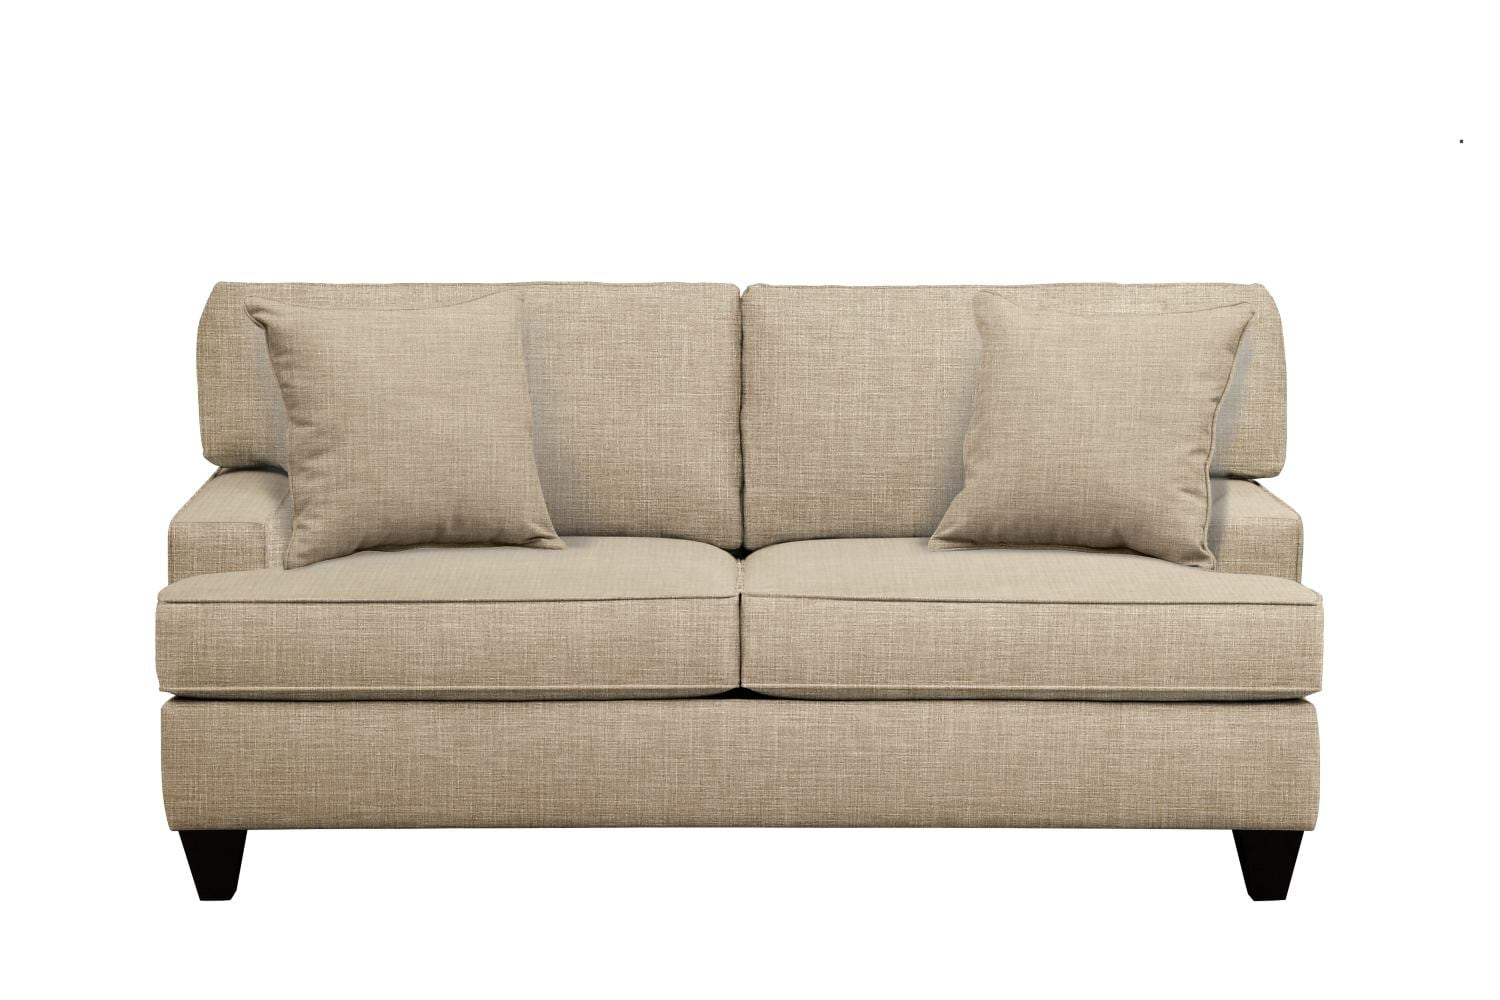 "Living Room Furniture - Conner Track Arm Sofa 75"" Milford II Toast w/ Milford II Toast  Pillow"